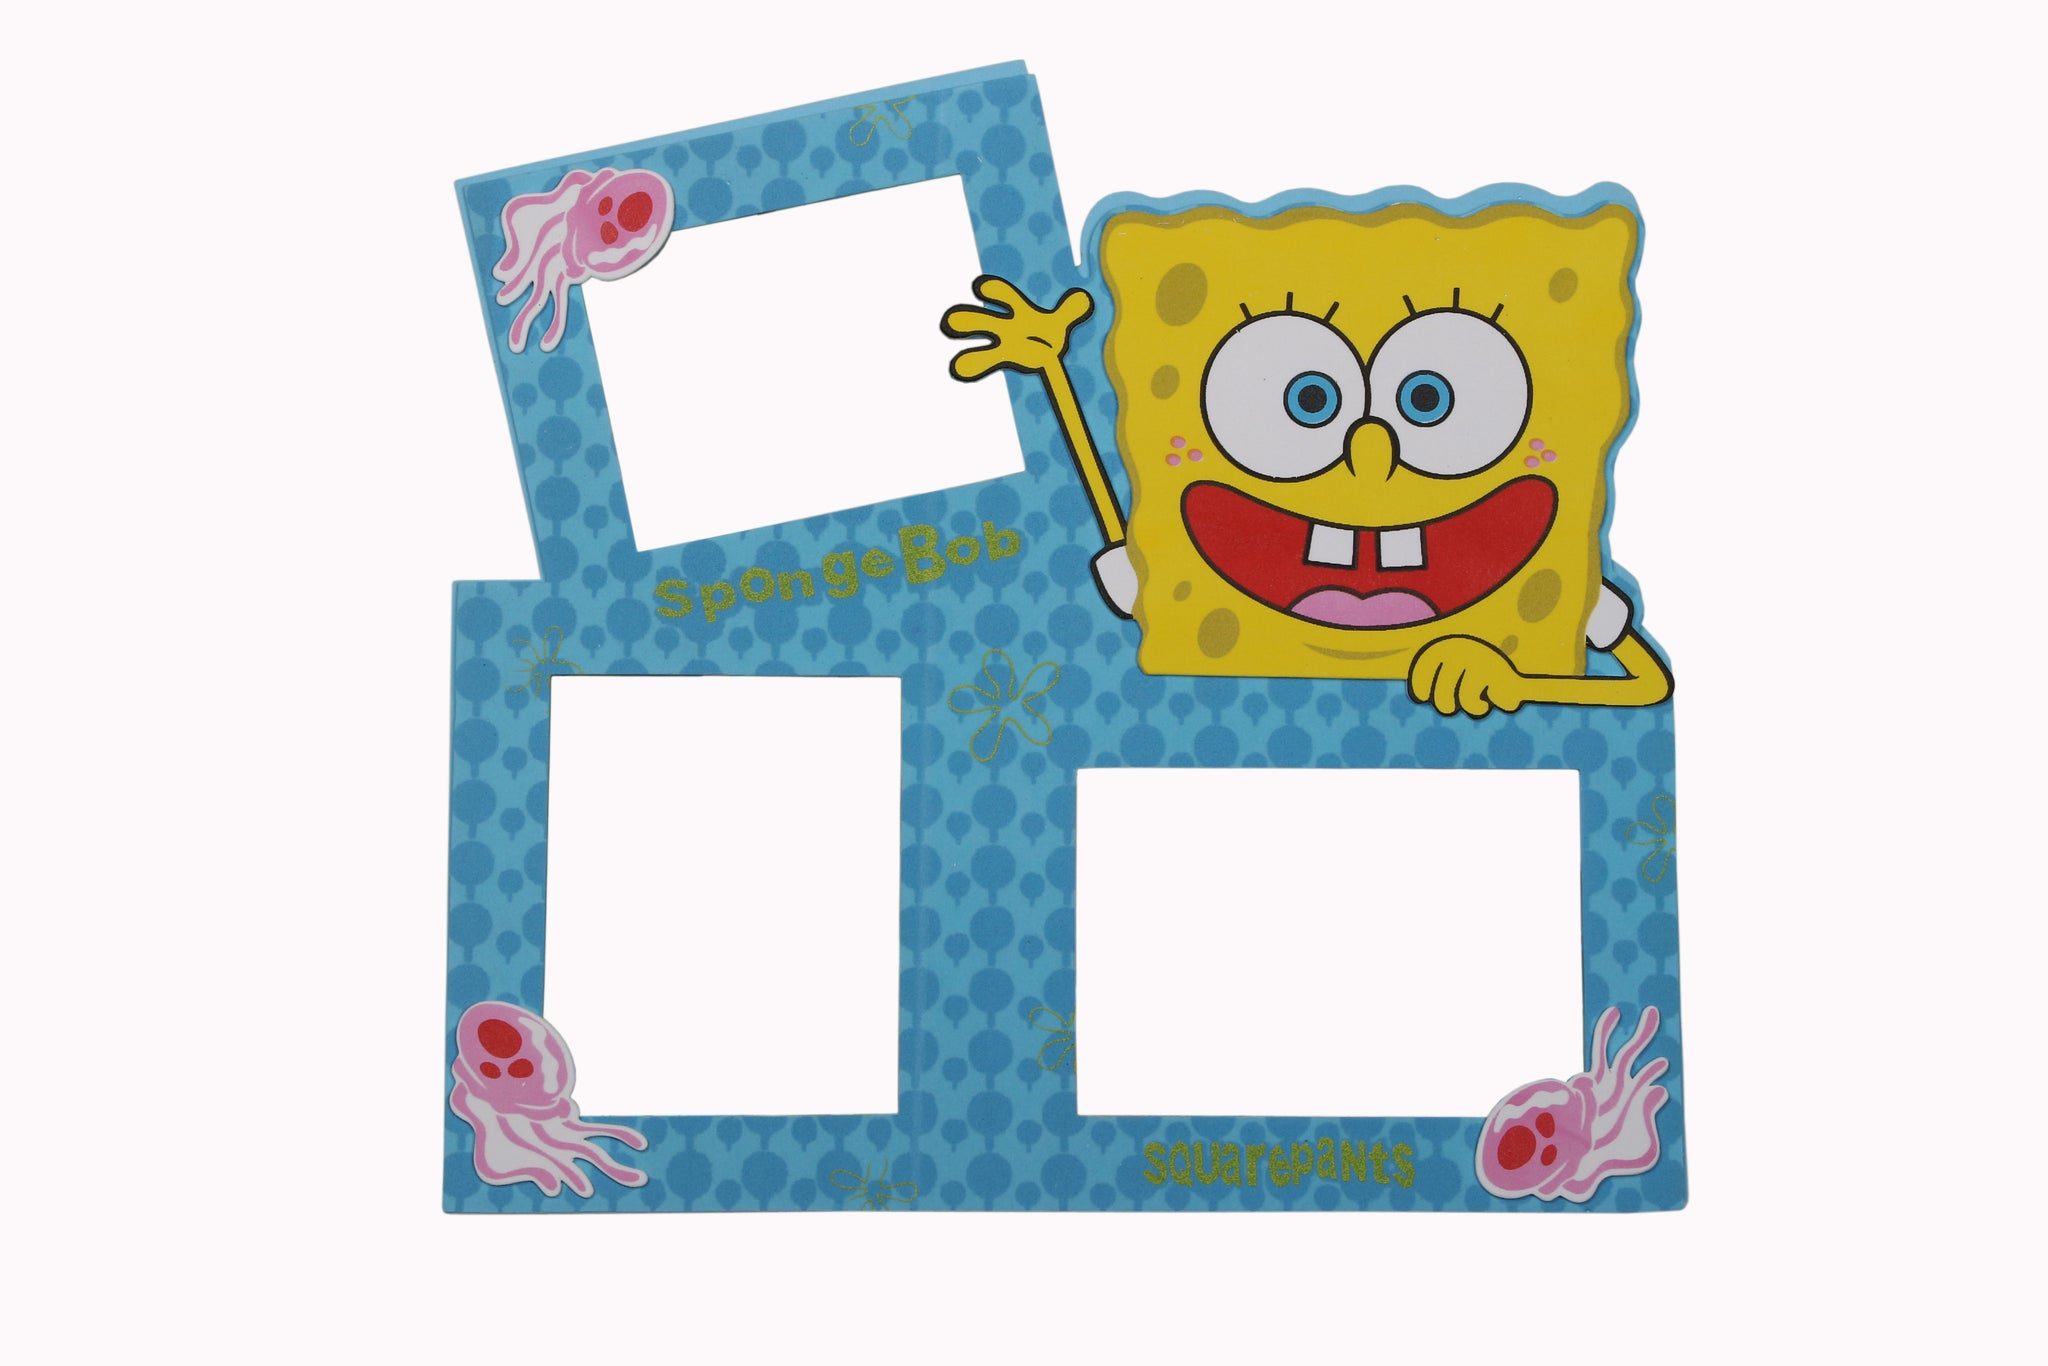 Spongebob Theme Wall Photo Frame